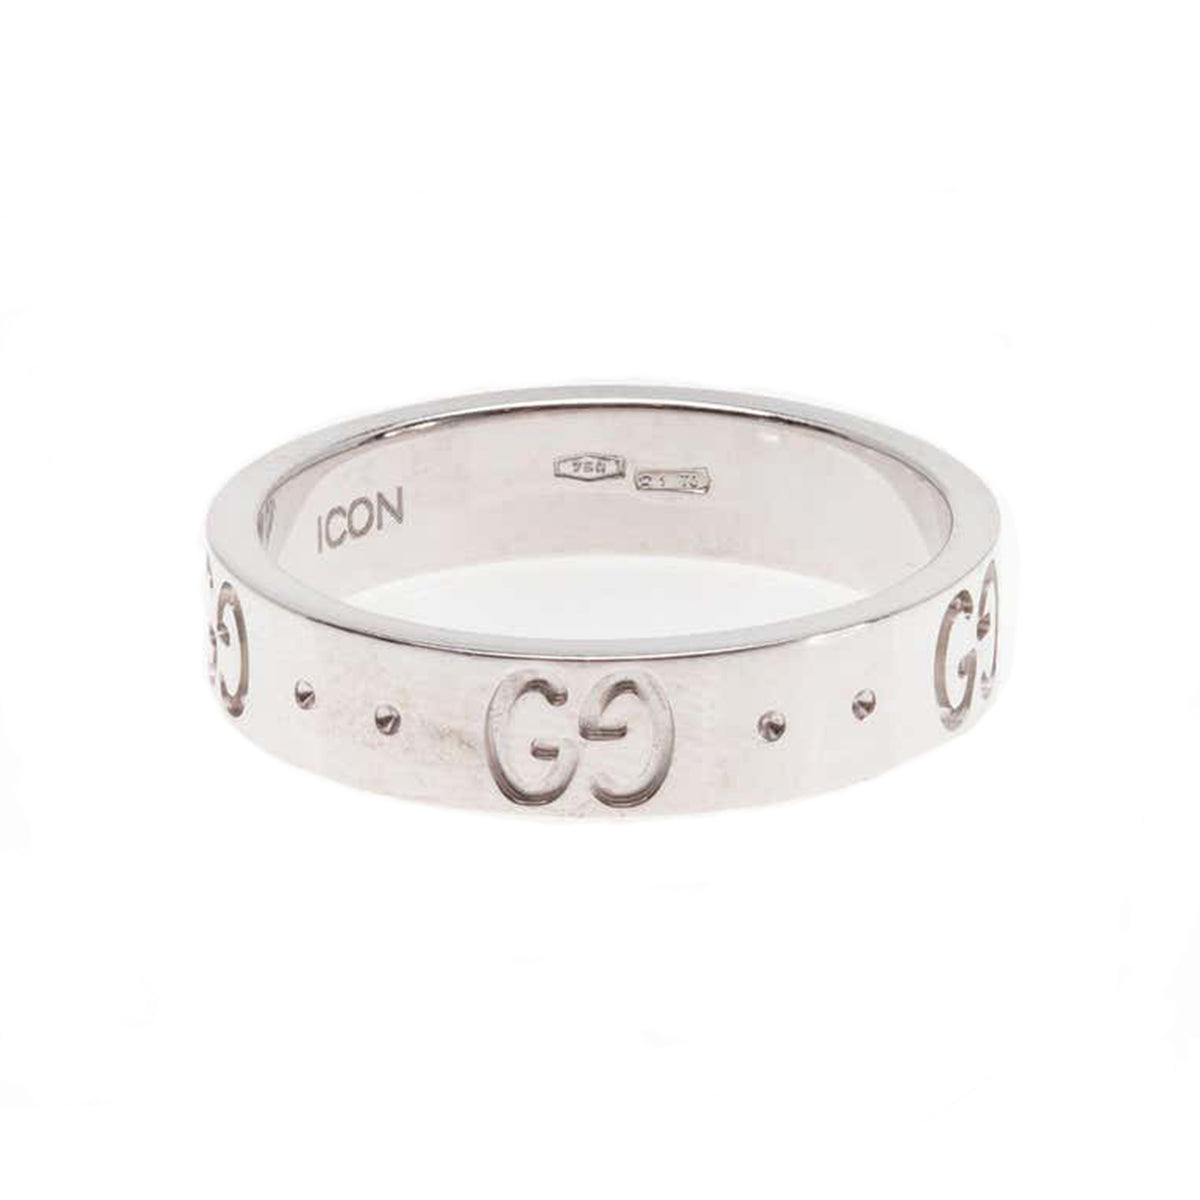 Signed Gucci Icon Collection Monogram Band Ring in 18 Karat White Gold